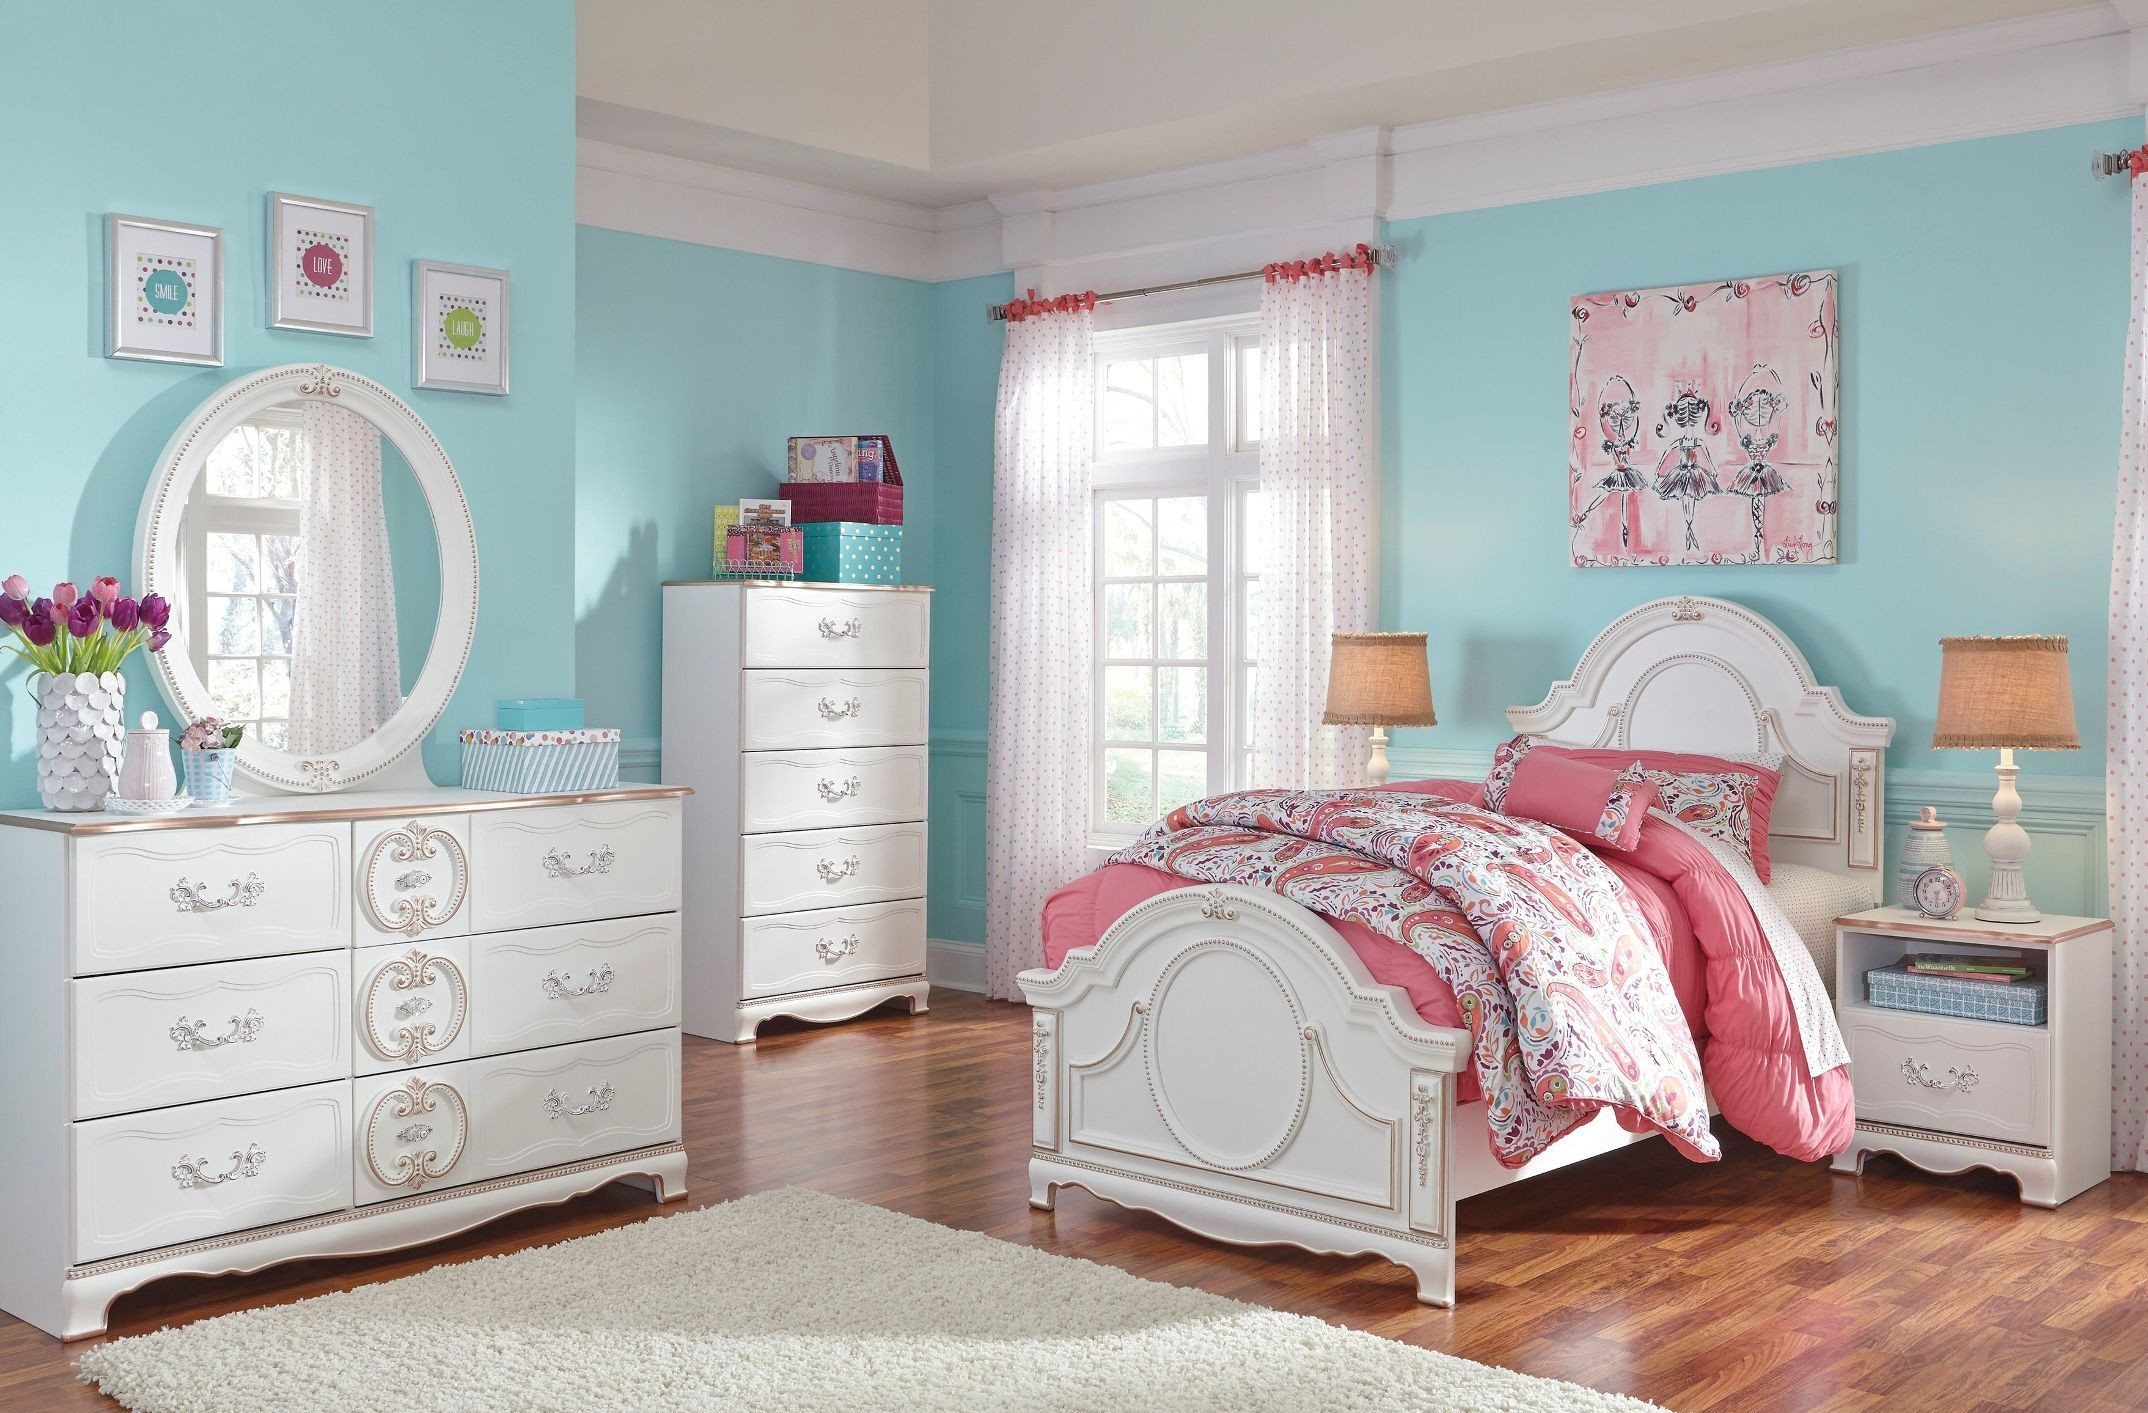 korabella white youth panel bedroom set from ashley b355 13894 | b355 21 26 46 53 52 83 91